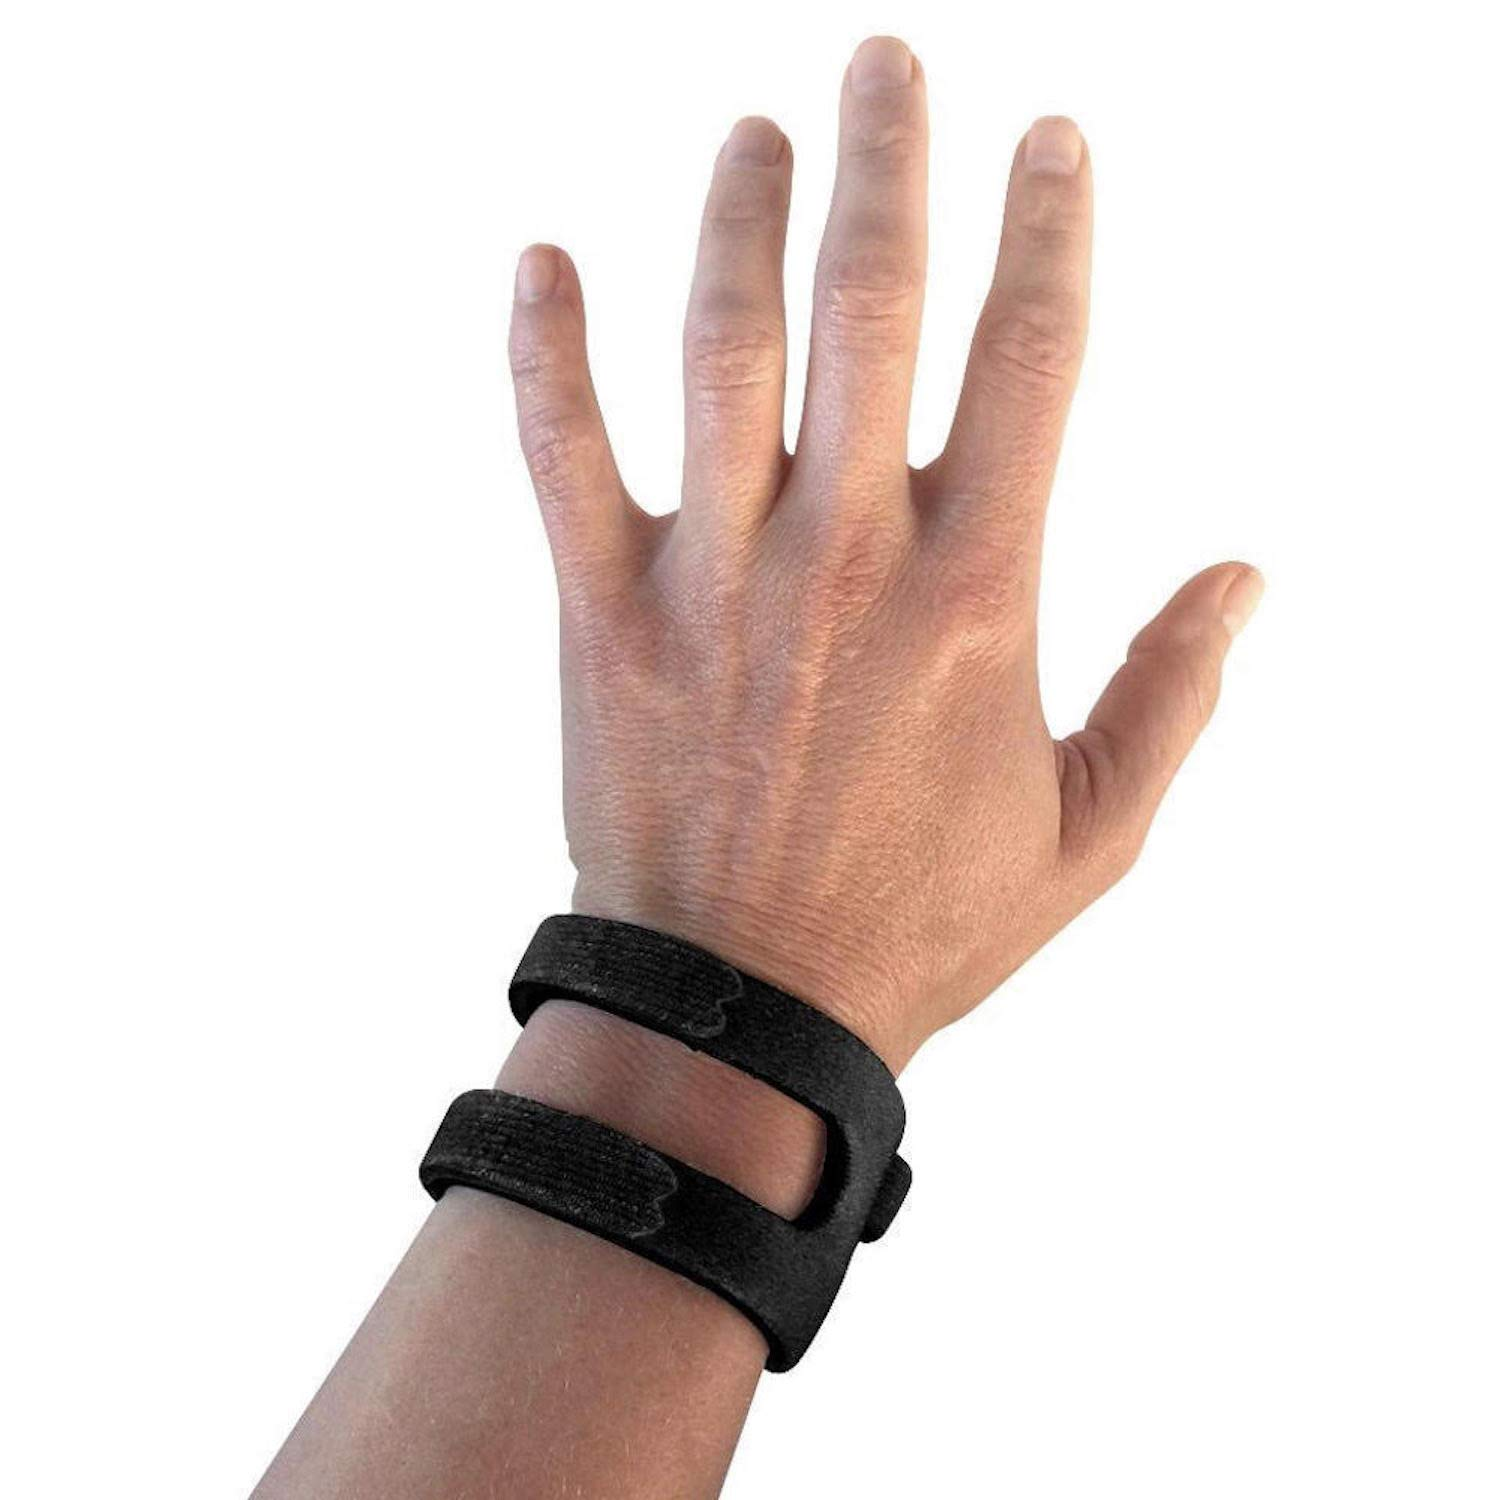 WristWidget (TM) - Patented, Adjustable Support, Wrist Brace For TFCC Tear- Triangular Fibrocartilage Injuries, Ulnar Sided Wrist Pain, Weight Bearing Strain - Left Or Right Hand - Regular BLACK by WristWidget